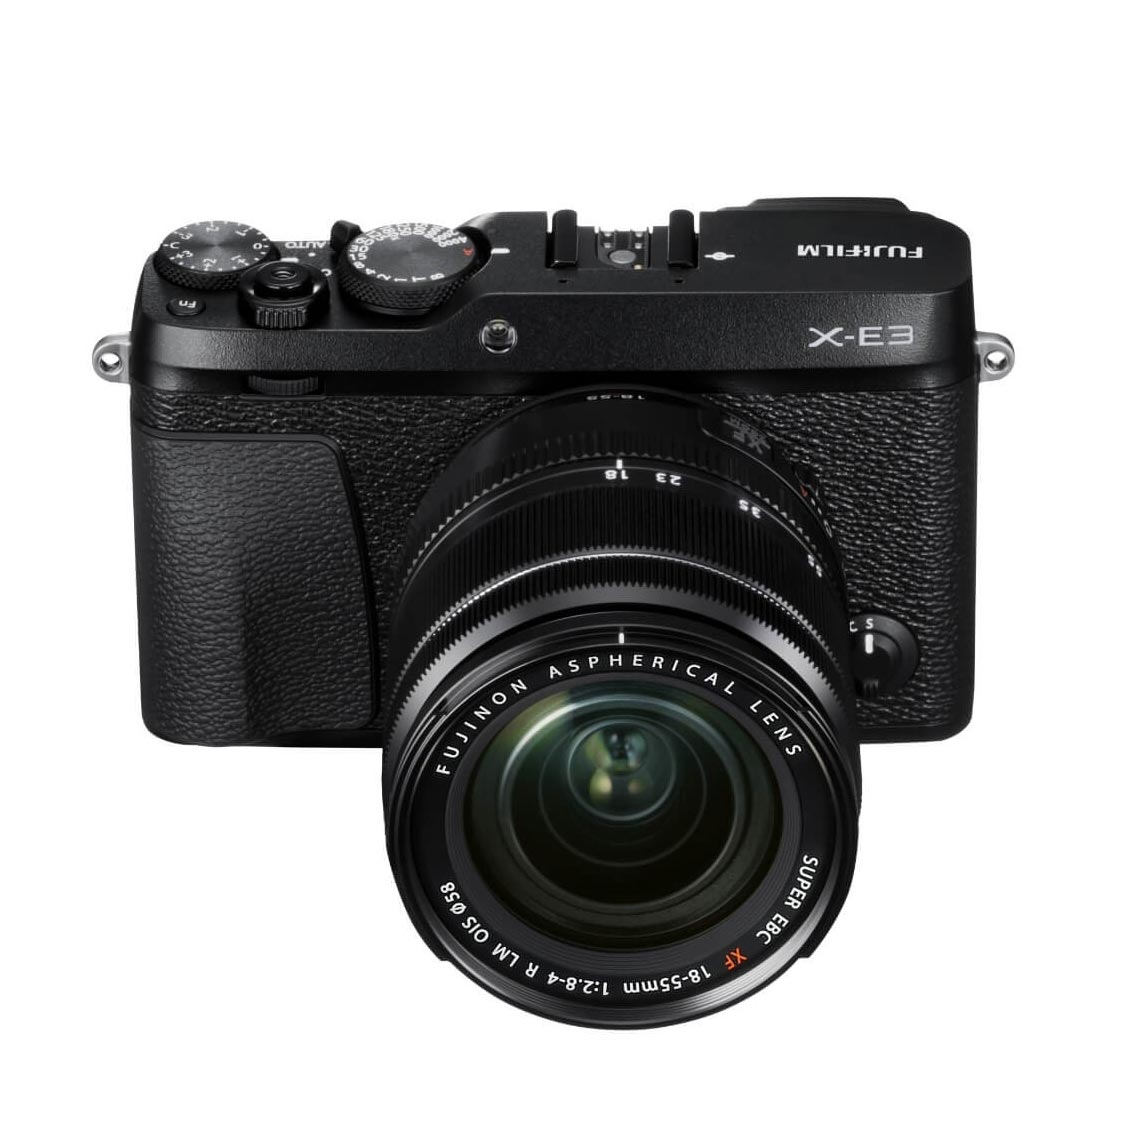 Fuji X-E3 Camera (black) with 18-55mm Lens